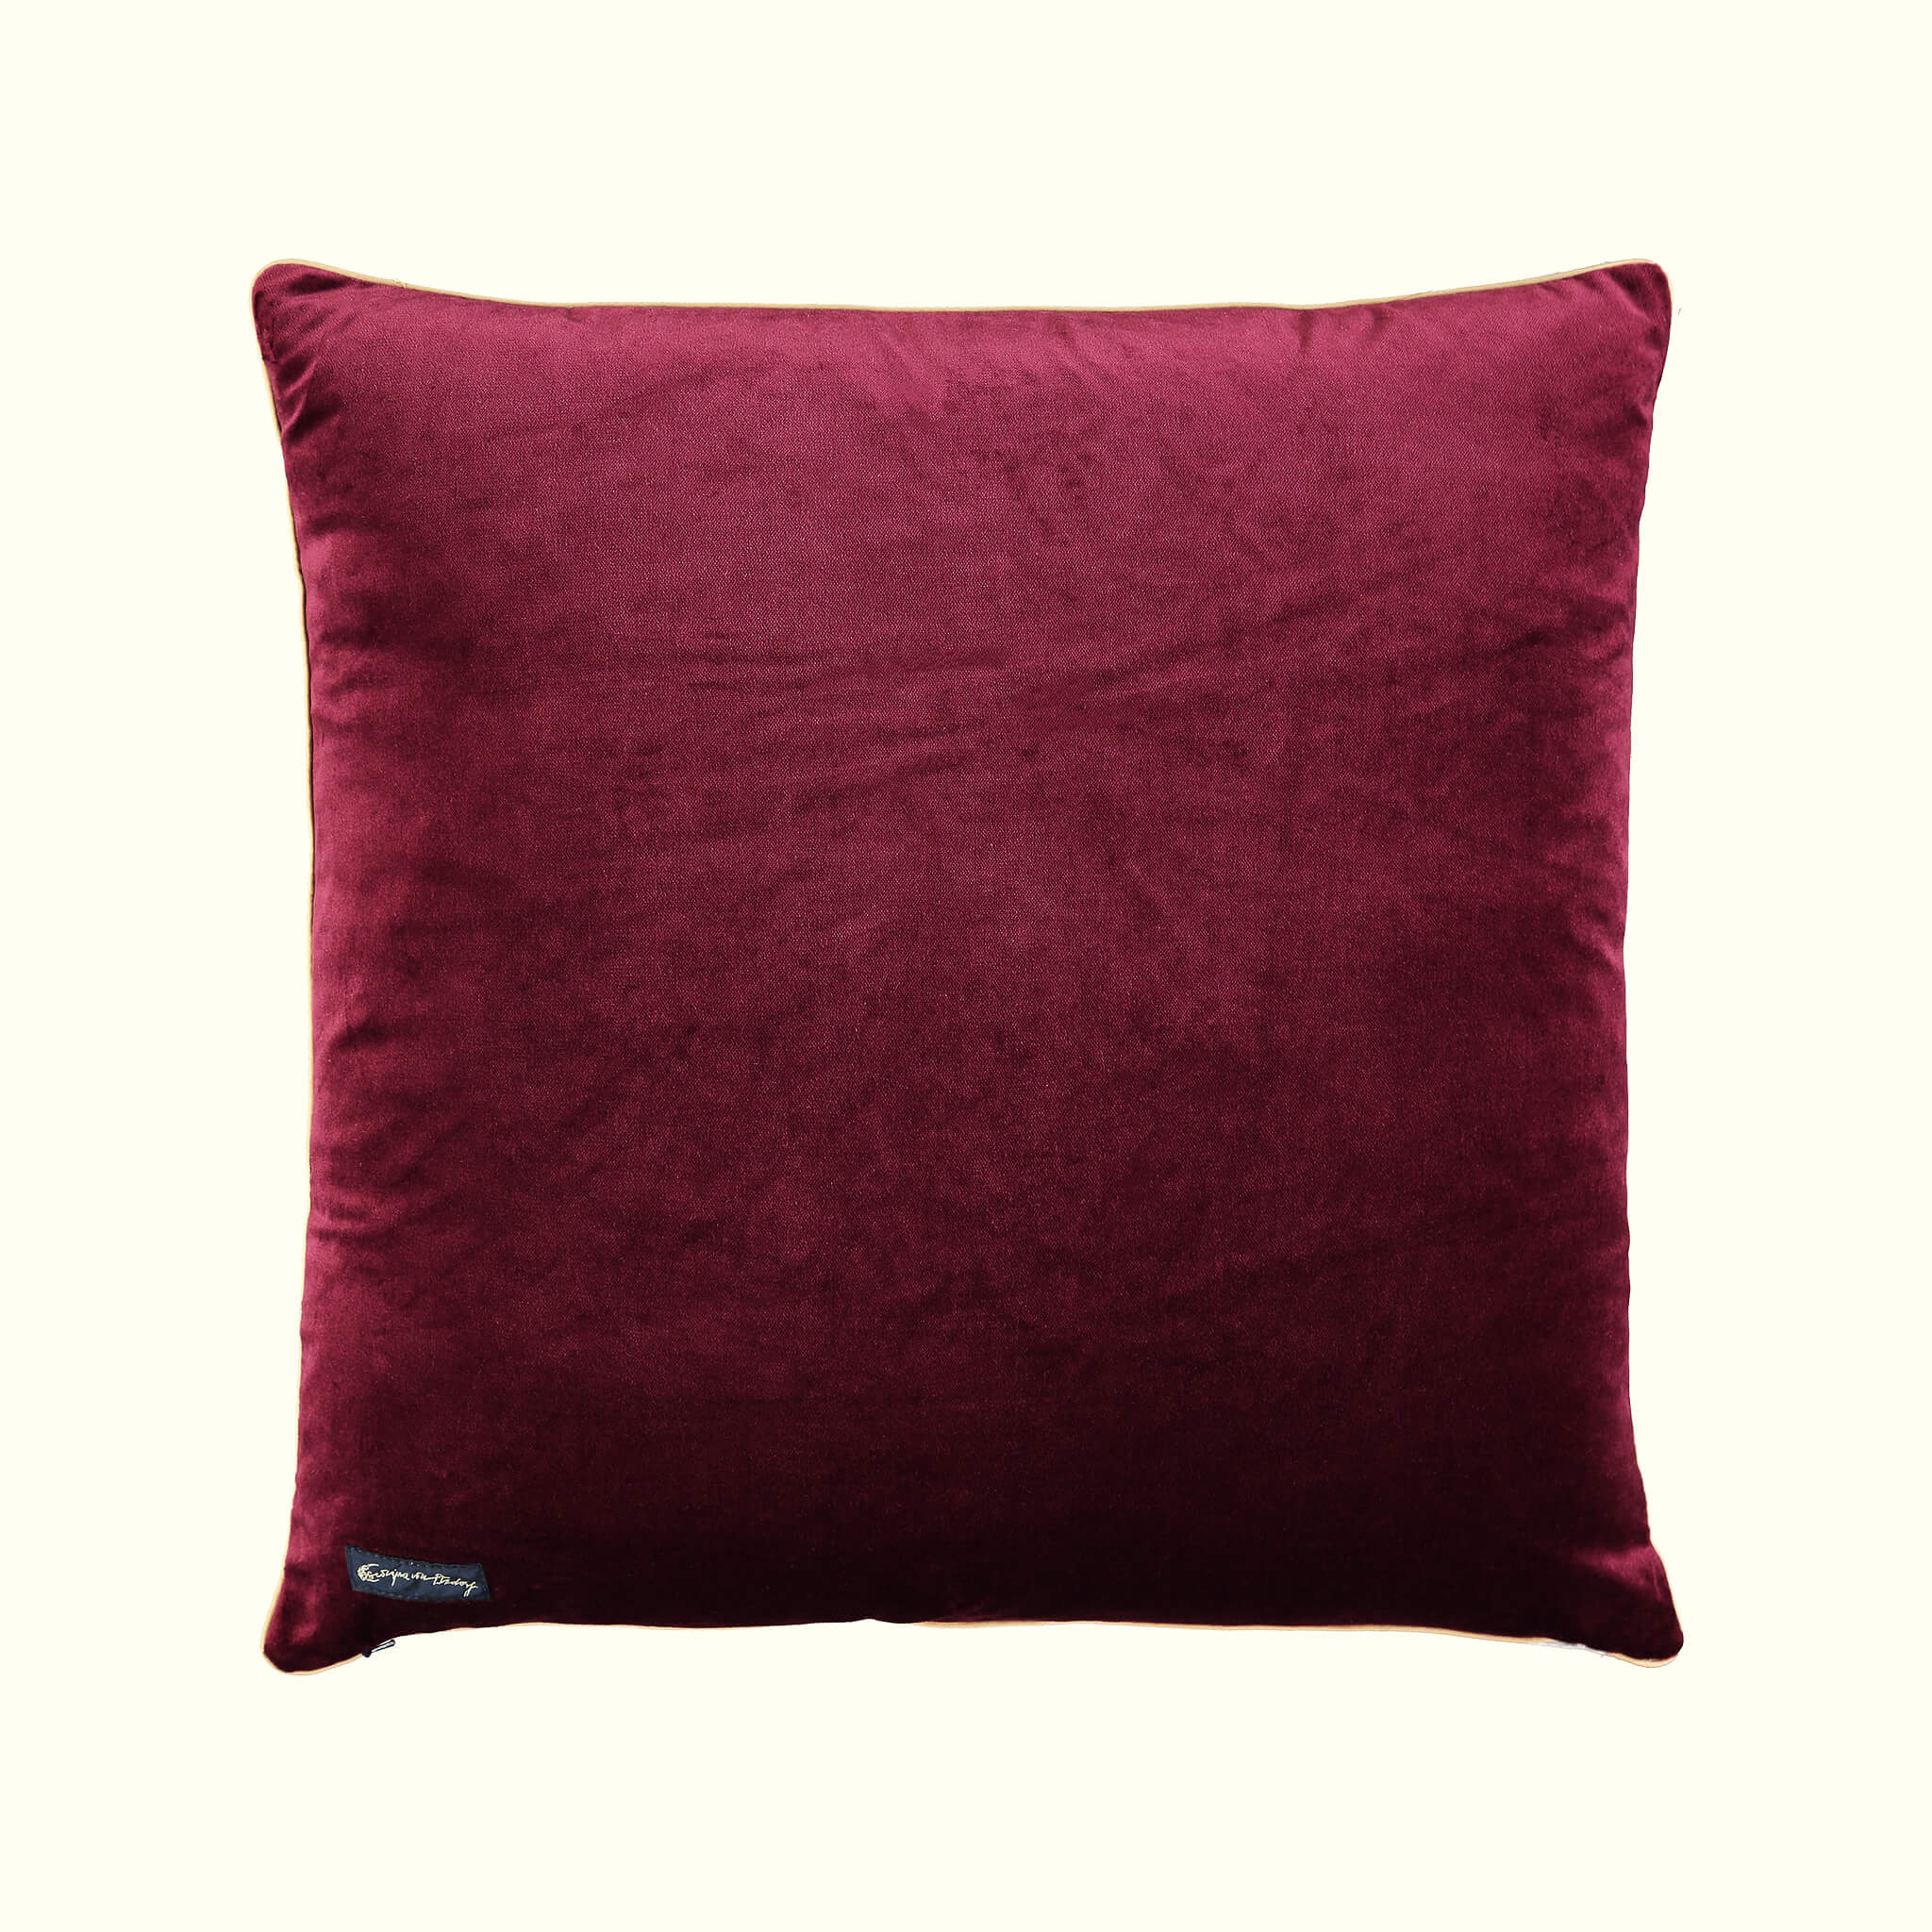 A luxury British silk velvet cushion by GVE in black and red Aurora print design.